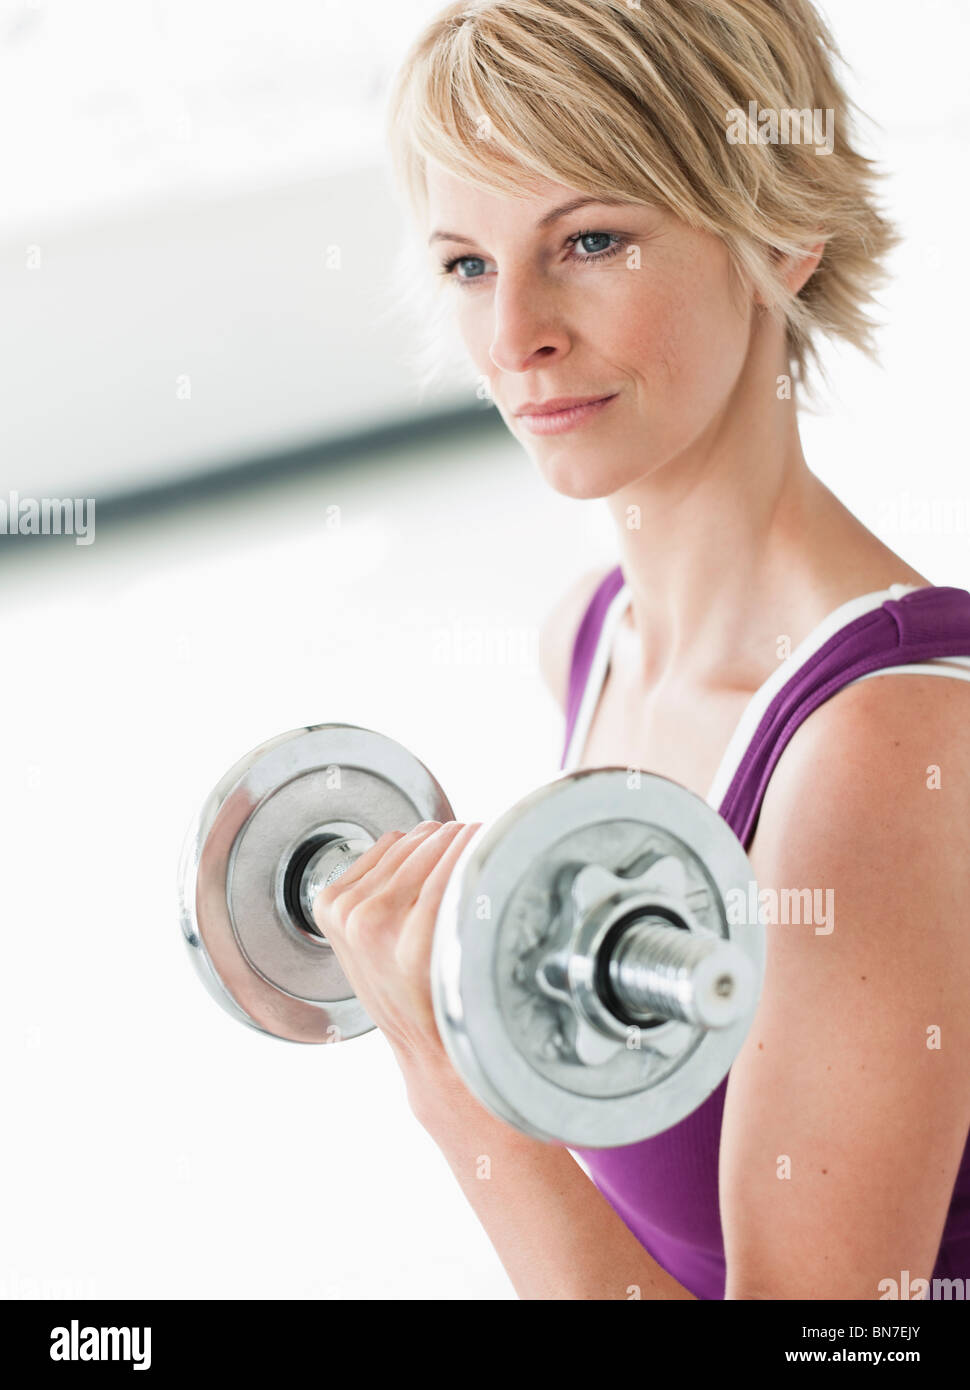 Woman with dumbbell training triceps - Stock Image